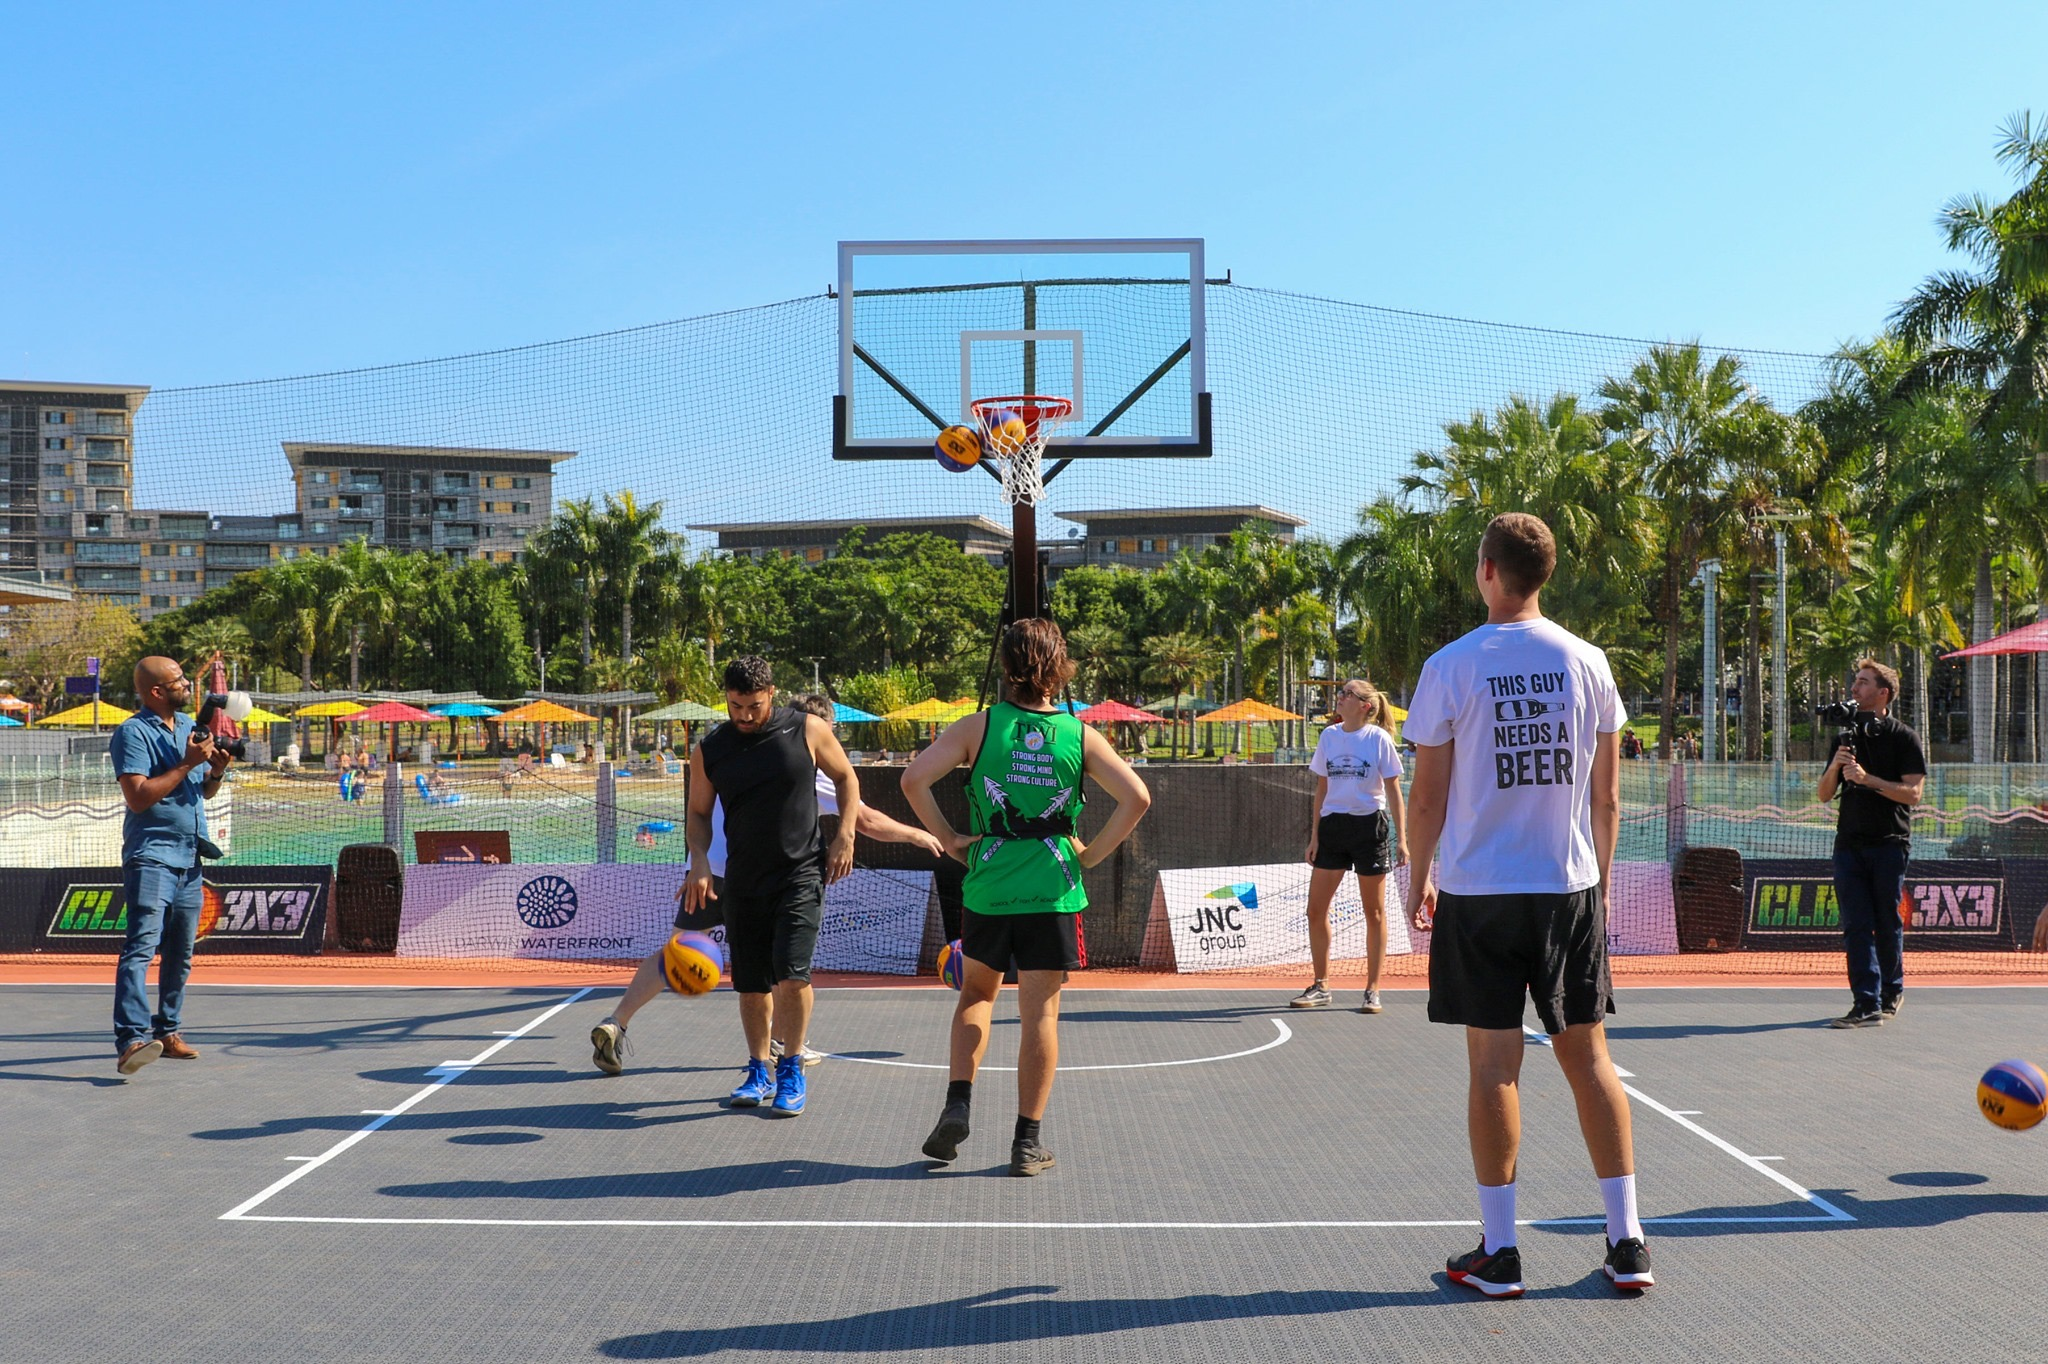 Play 3x3 Basketball Australia, Australian National League, Local Basketball League